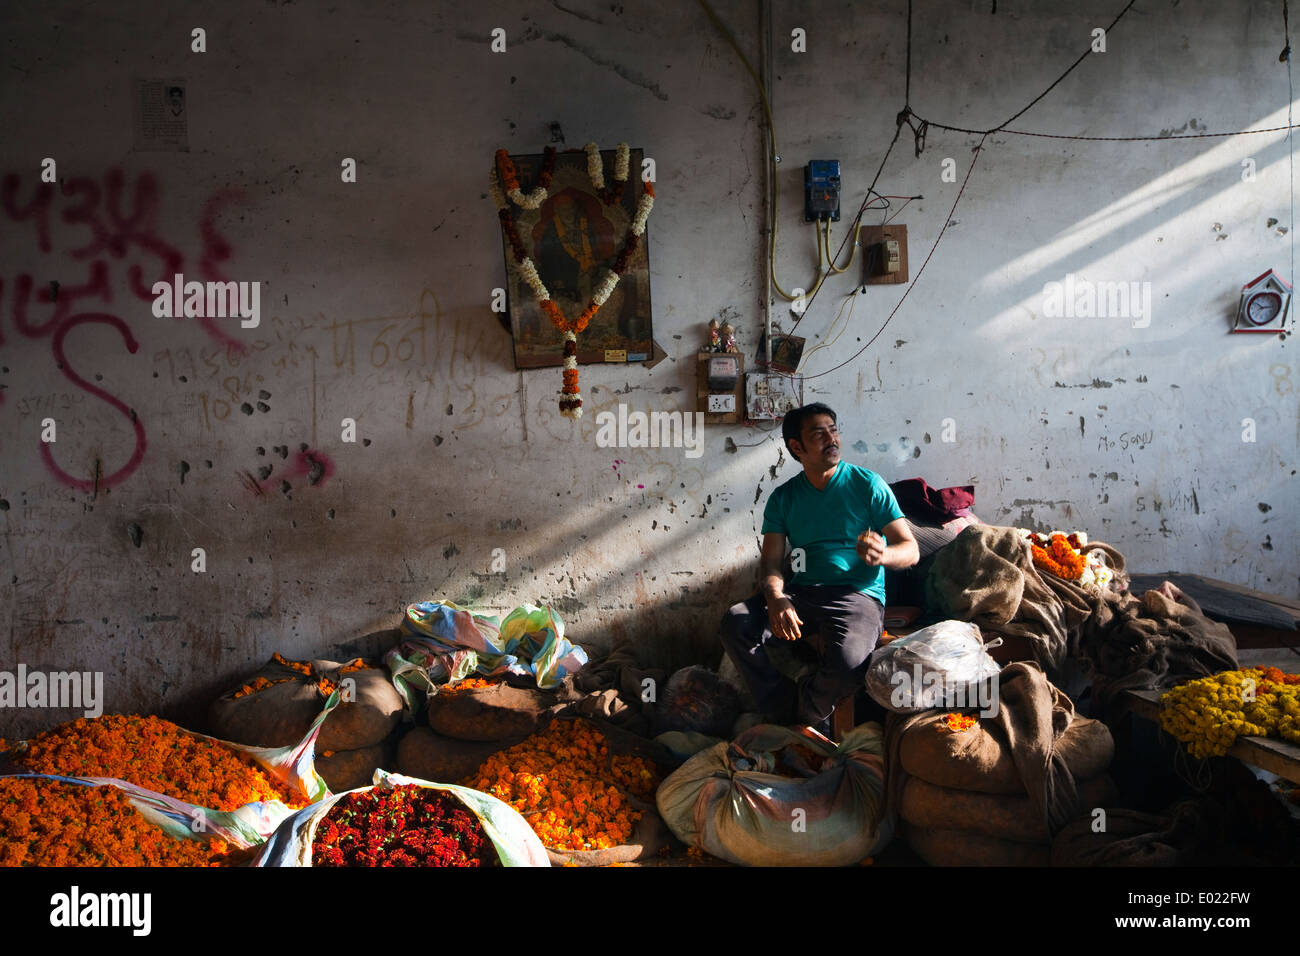 A man smokes a cigarette at his stall amidst A marigolds for garlands at the Mehrauli flower market, Delhi, India - Stock Image